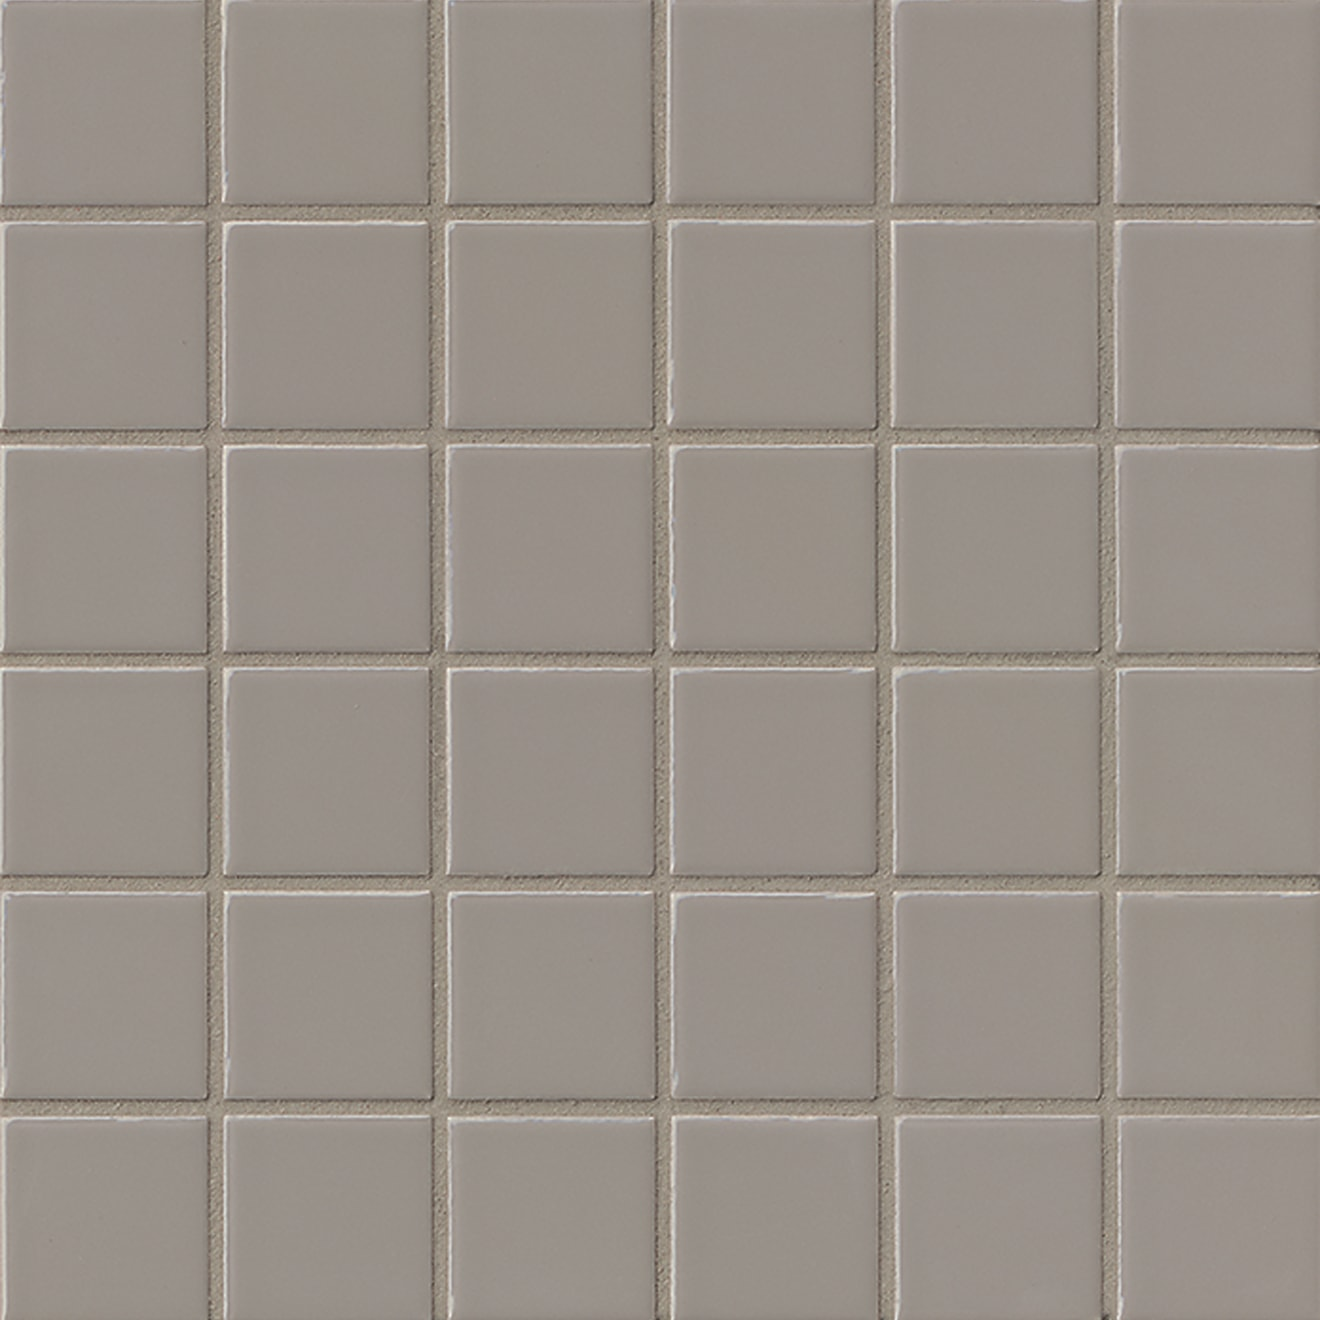 Elements Floor & Wall Mosaic in Dark Grey